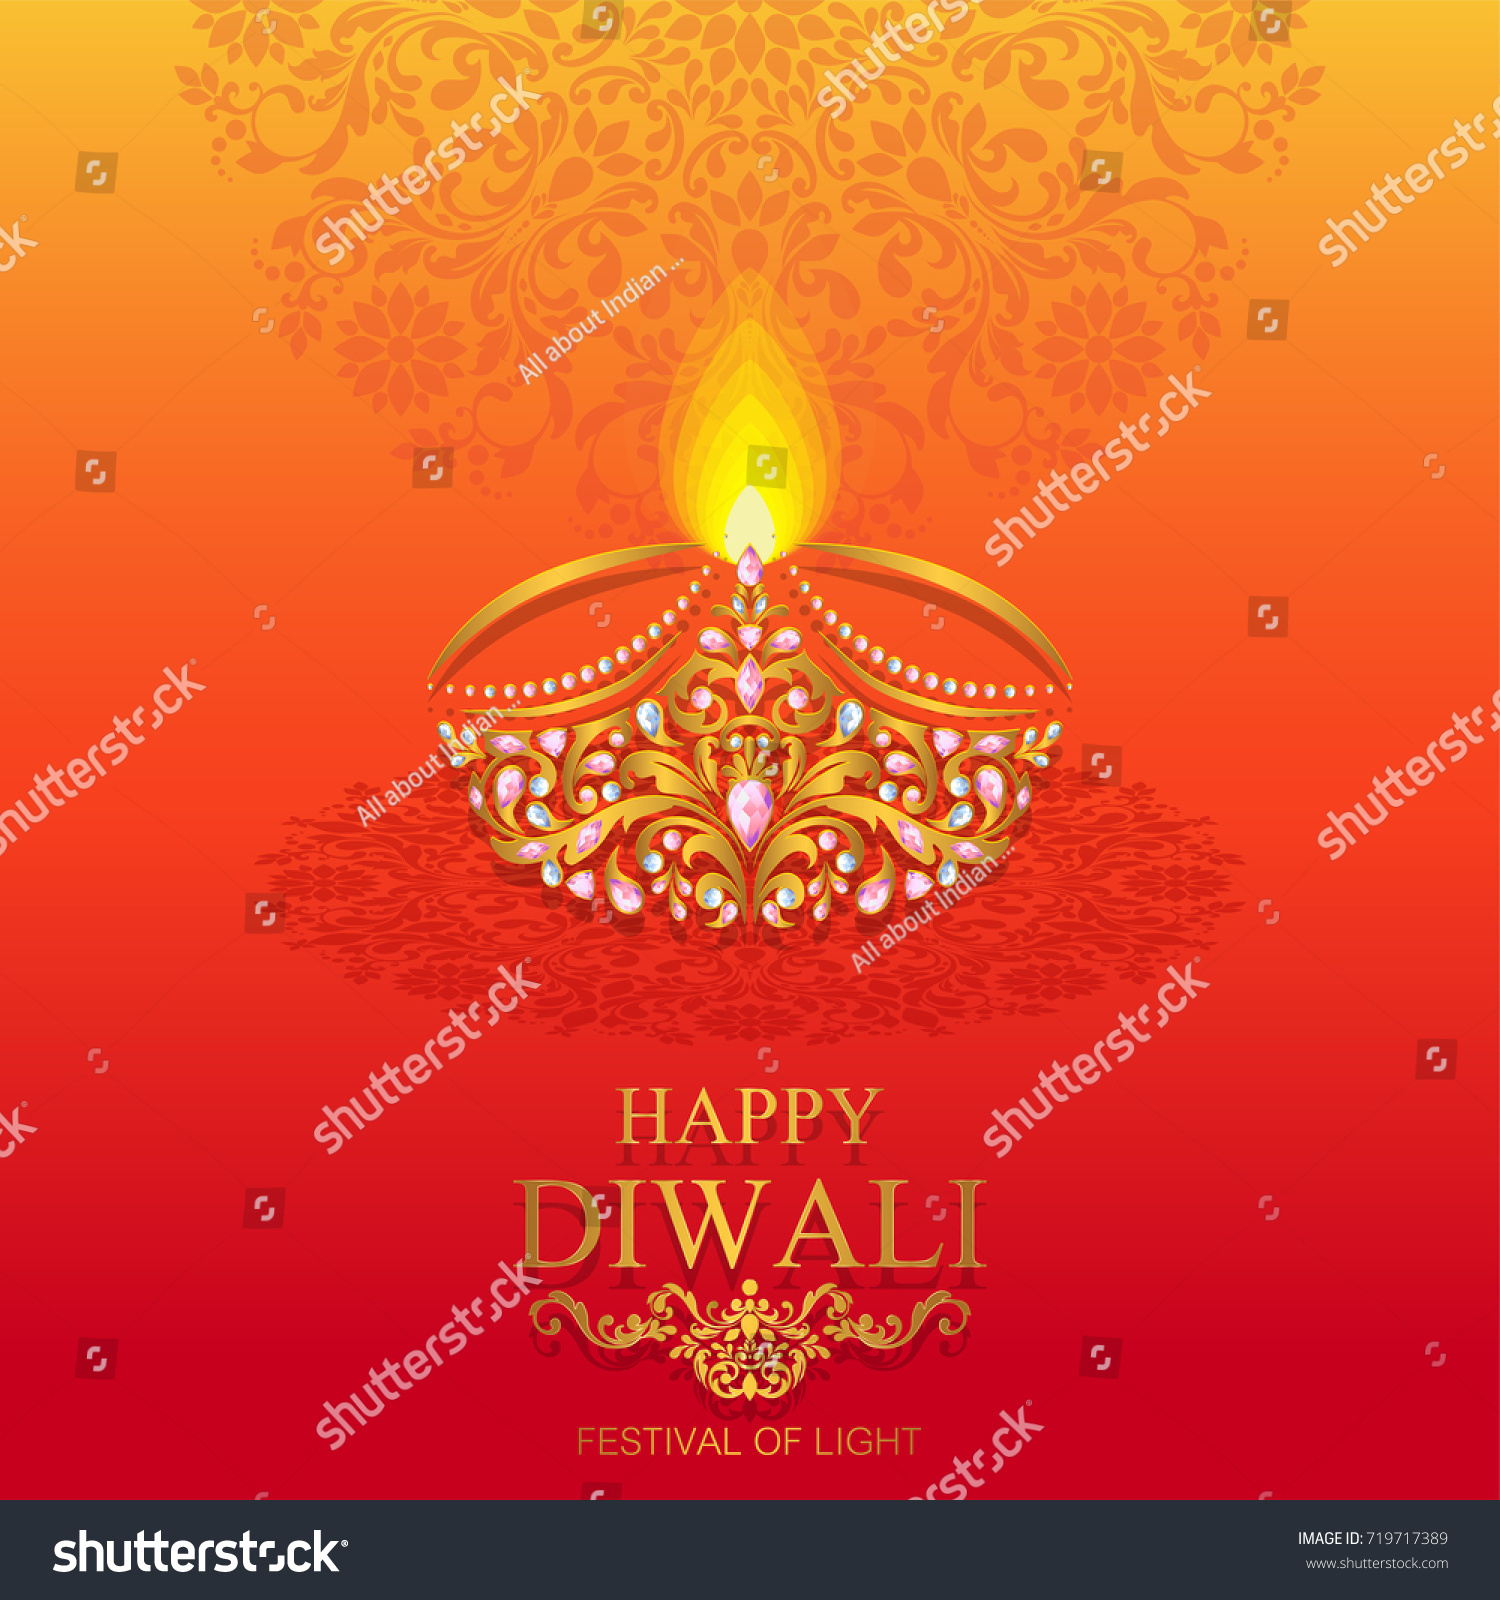 Happy Diwali Festival Card With Gold Peacock Patterned And Crystals